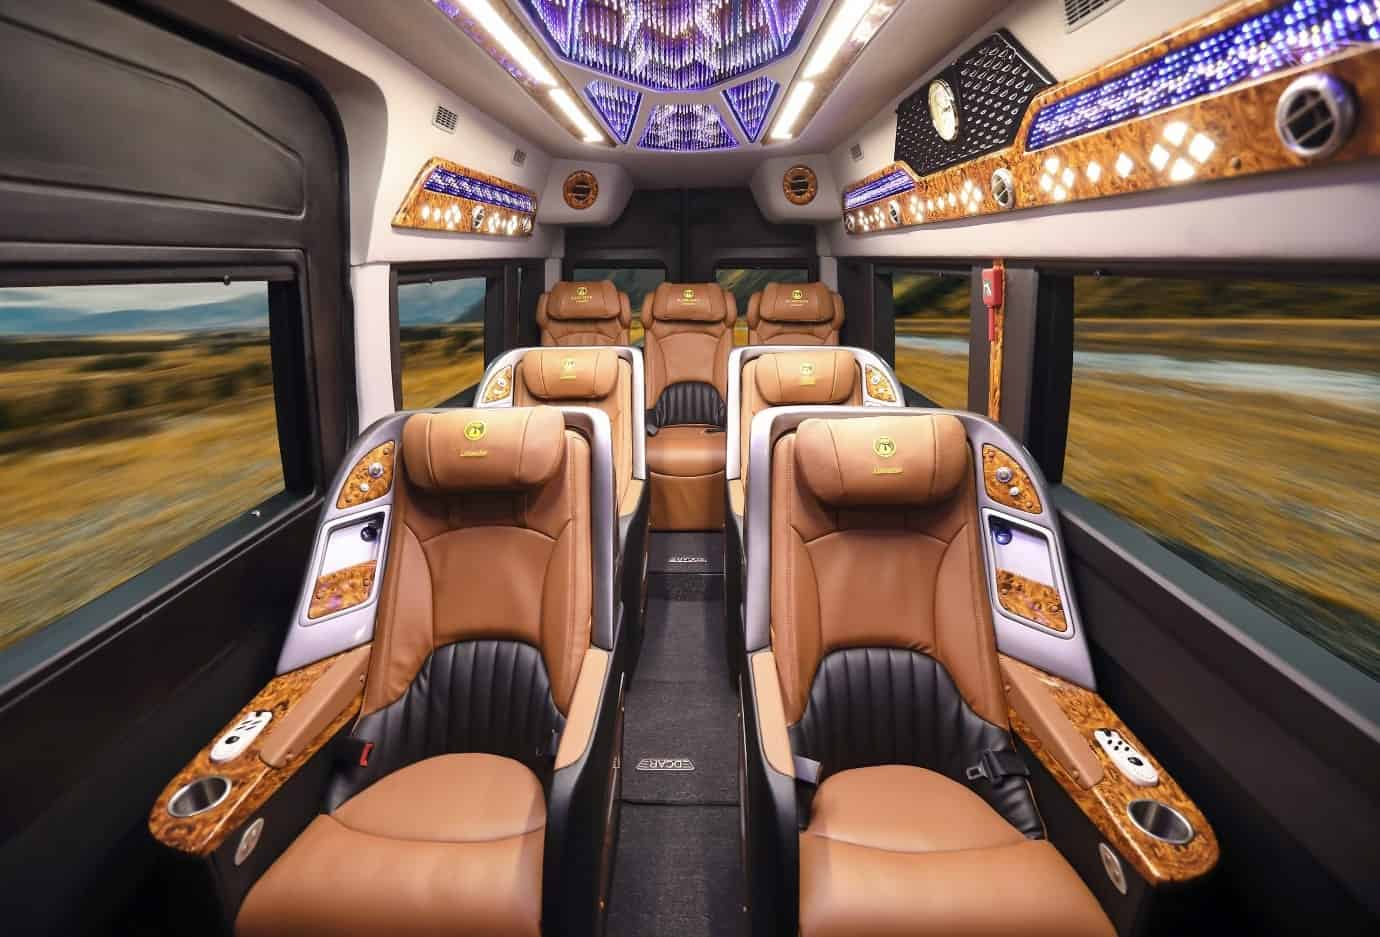 Travel from Hanoi to Halong Bay by shuttle bus